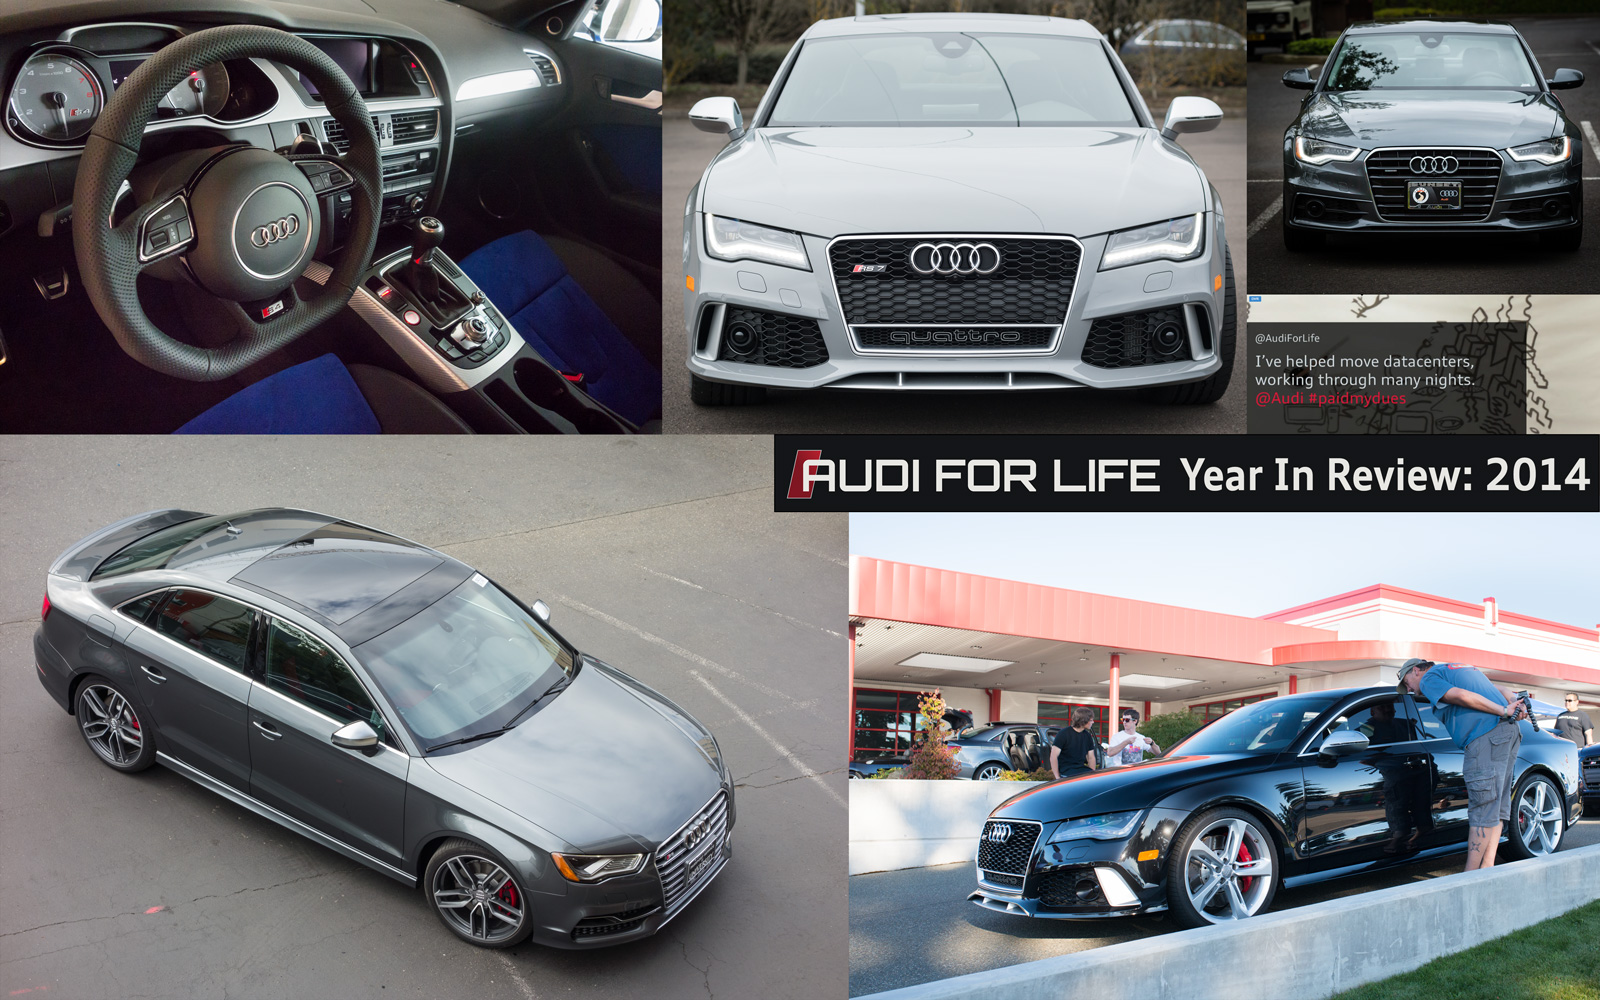 Year in Review: Looking Back at #AudiForLife in 2014